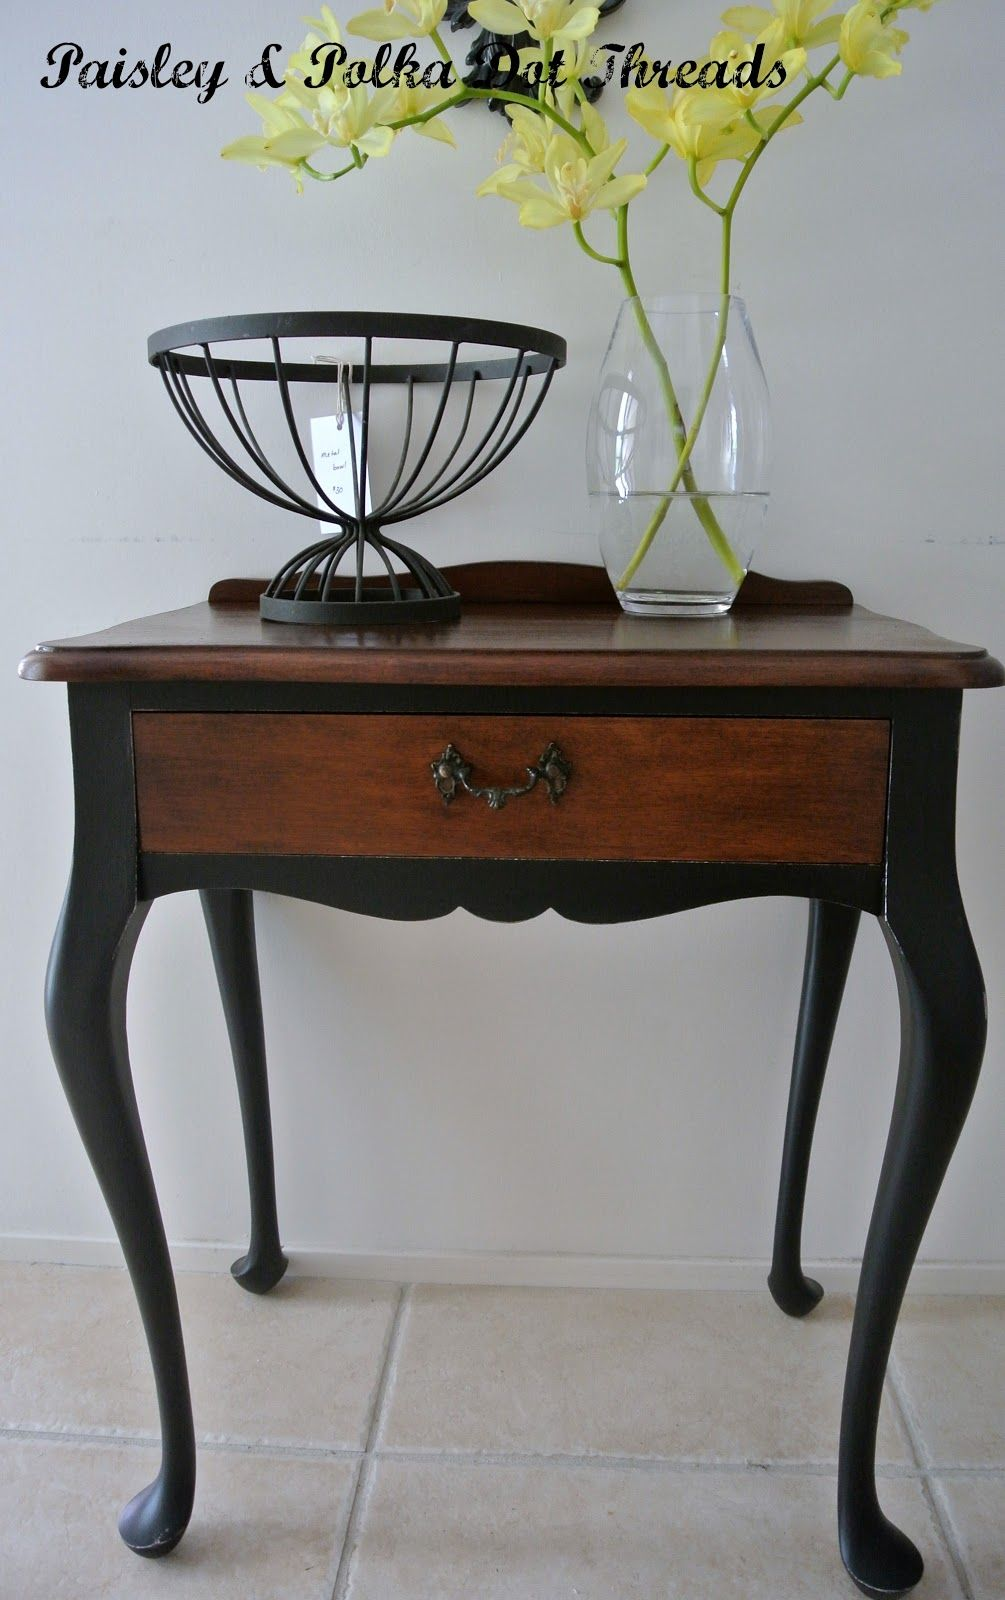 Queen Anne Table   Legs Painted Black. Going To Do This On My Living Room